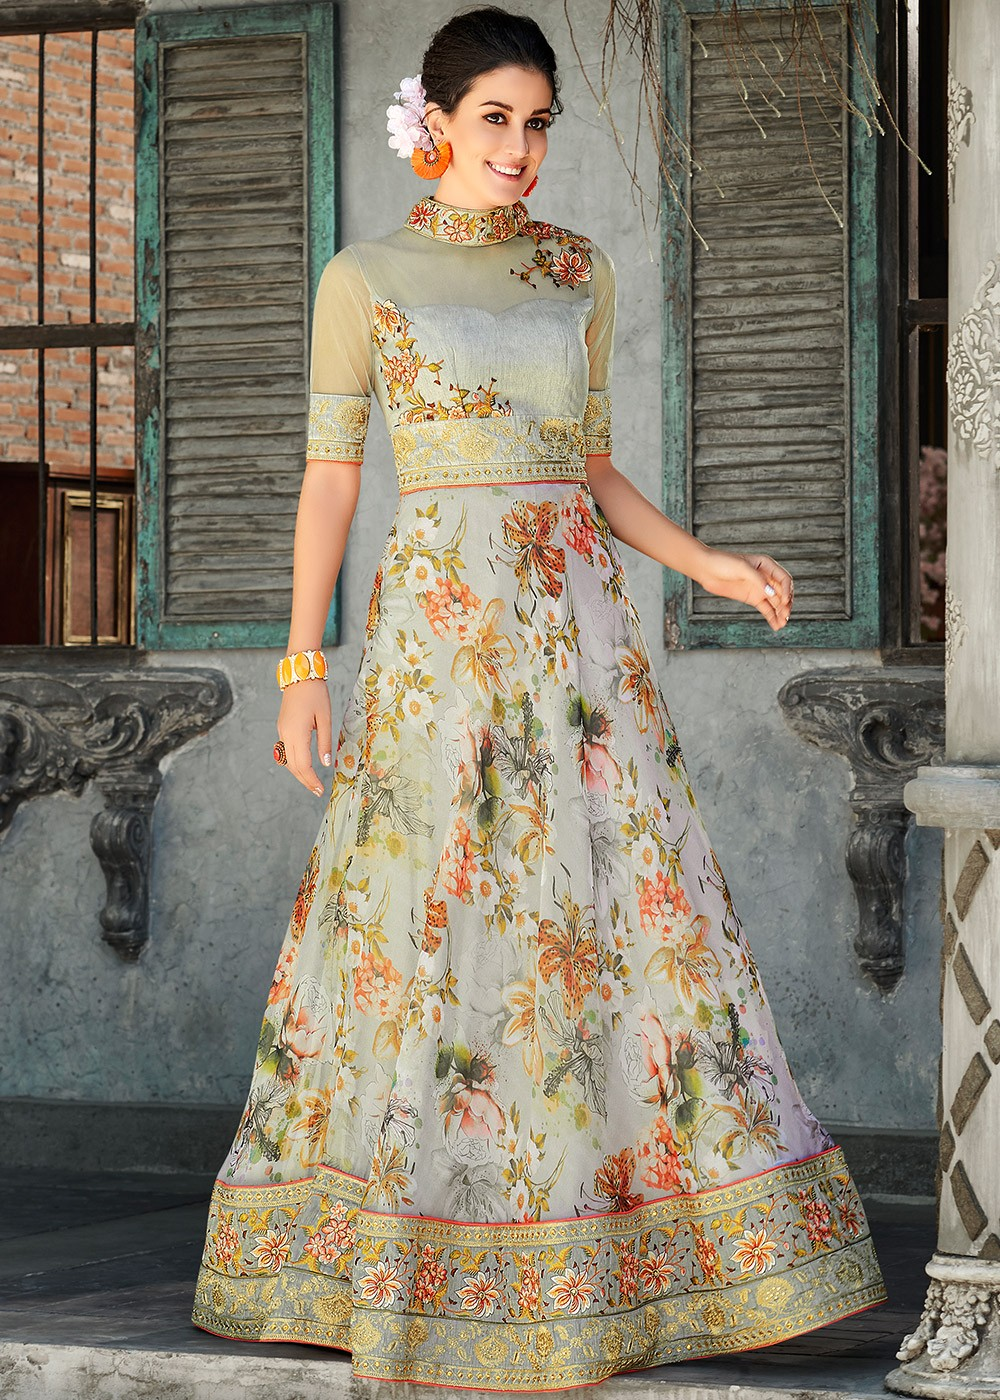 2126c8d83 Grey Floral Digital Print Organza Silk Readymade Gown. Buy Grey Floral  Digital Print Organza Silk Readymade Indian Gown Online